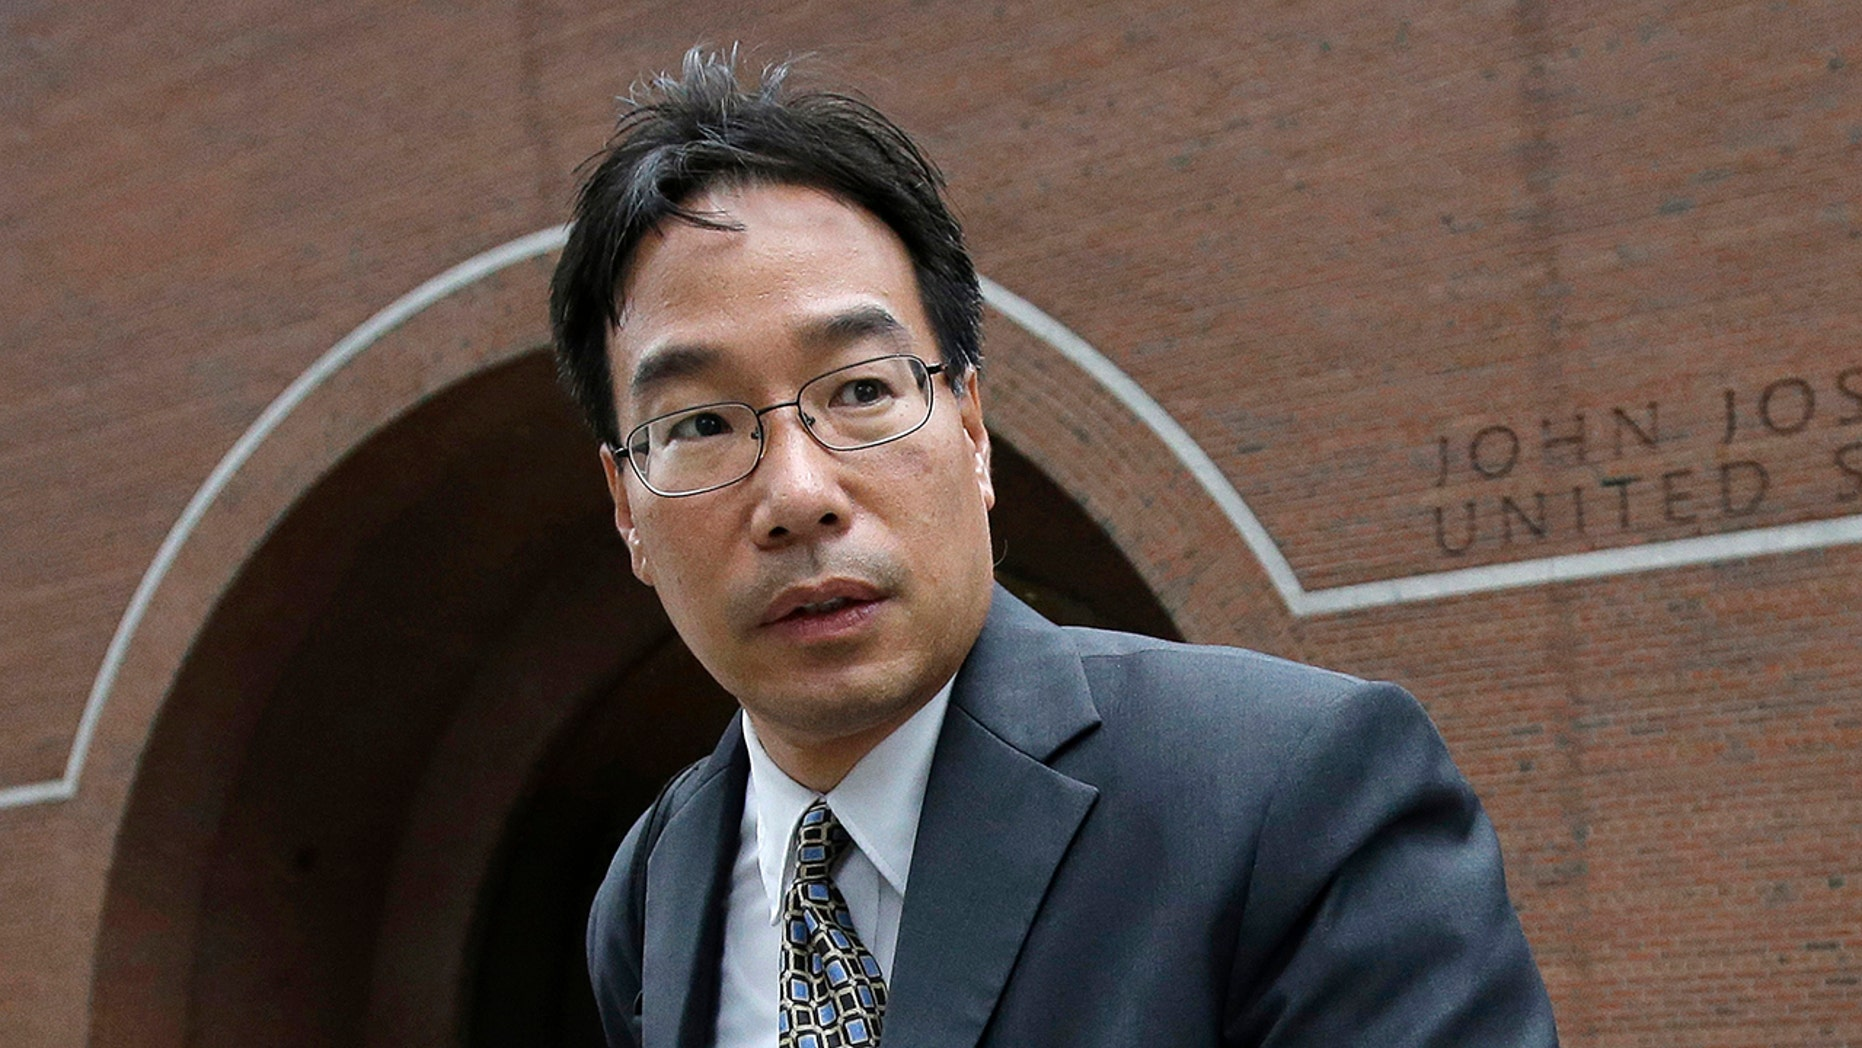 Glenn Chin, supervisory pharmacist at the now-closed New England Compounding Center, who was charged in a deadly meningitis outbreak, has been cleared of murder allegations. A Boston jury on Wednesday found Chin not guilty of causing the deaths of 25 people who were injected with mold-tainted drugs. But jurors convicted Chin of mail fraud and racketeering.